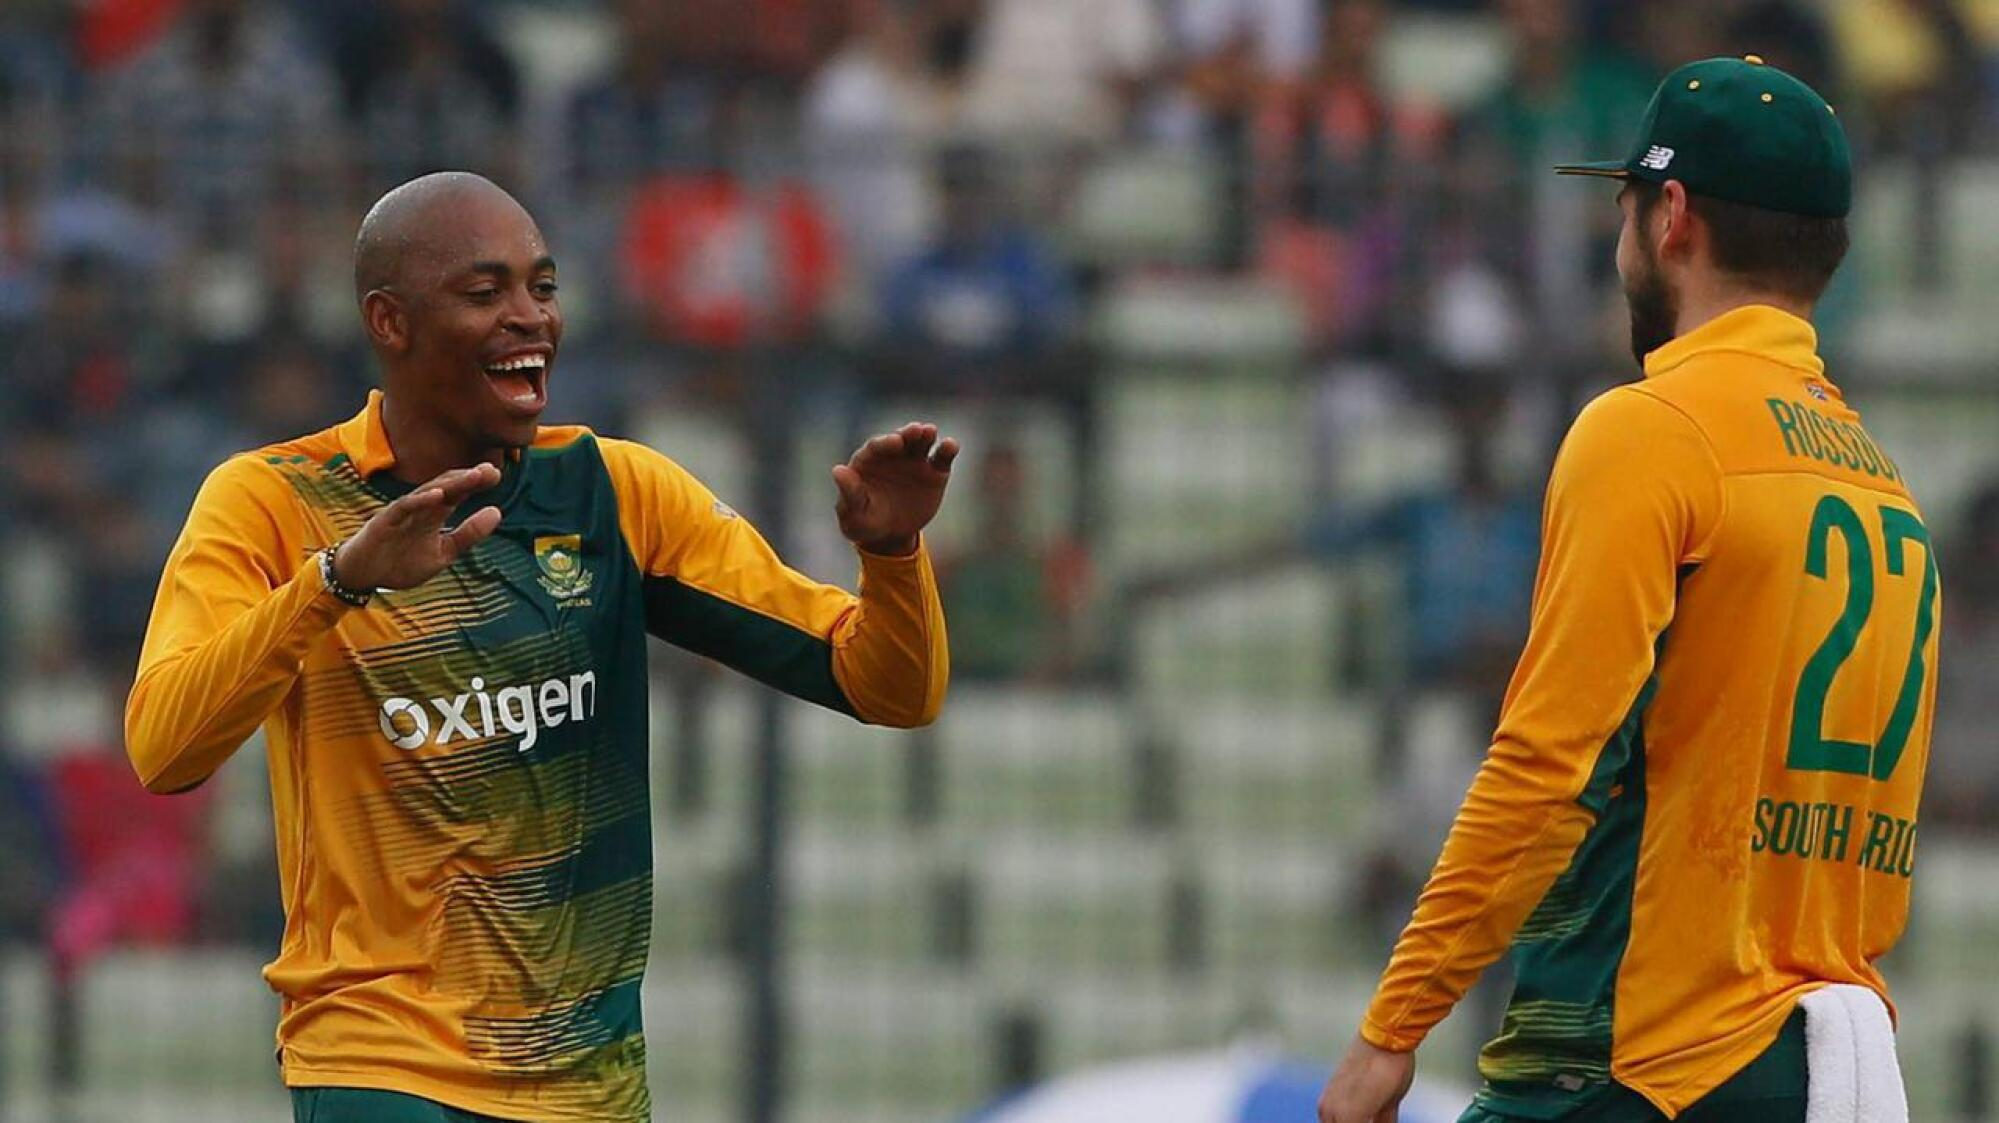 South Africa's Aaron Phangiso celebrates a wicket with teammate Rilee Rossouw during a Twenty20 International against Bangladesh in Dhaka in 2015